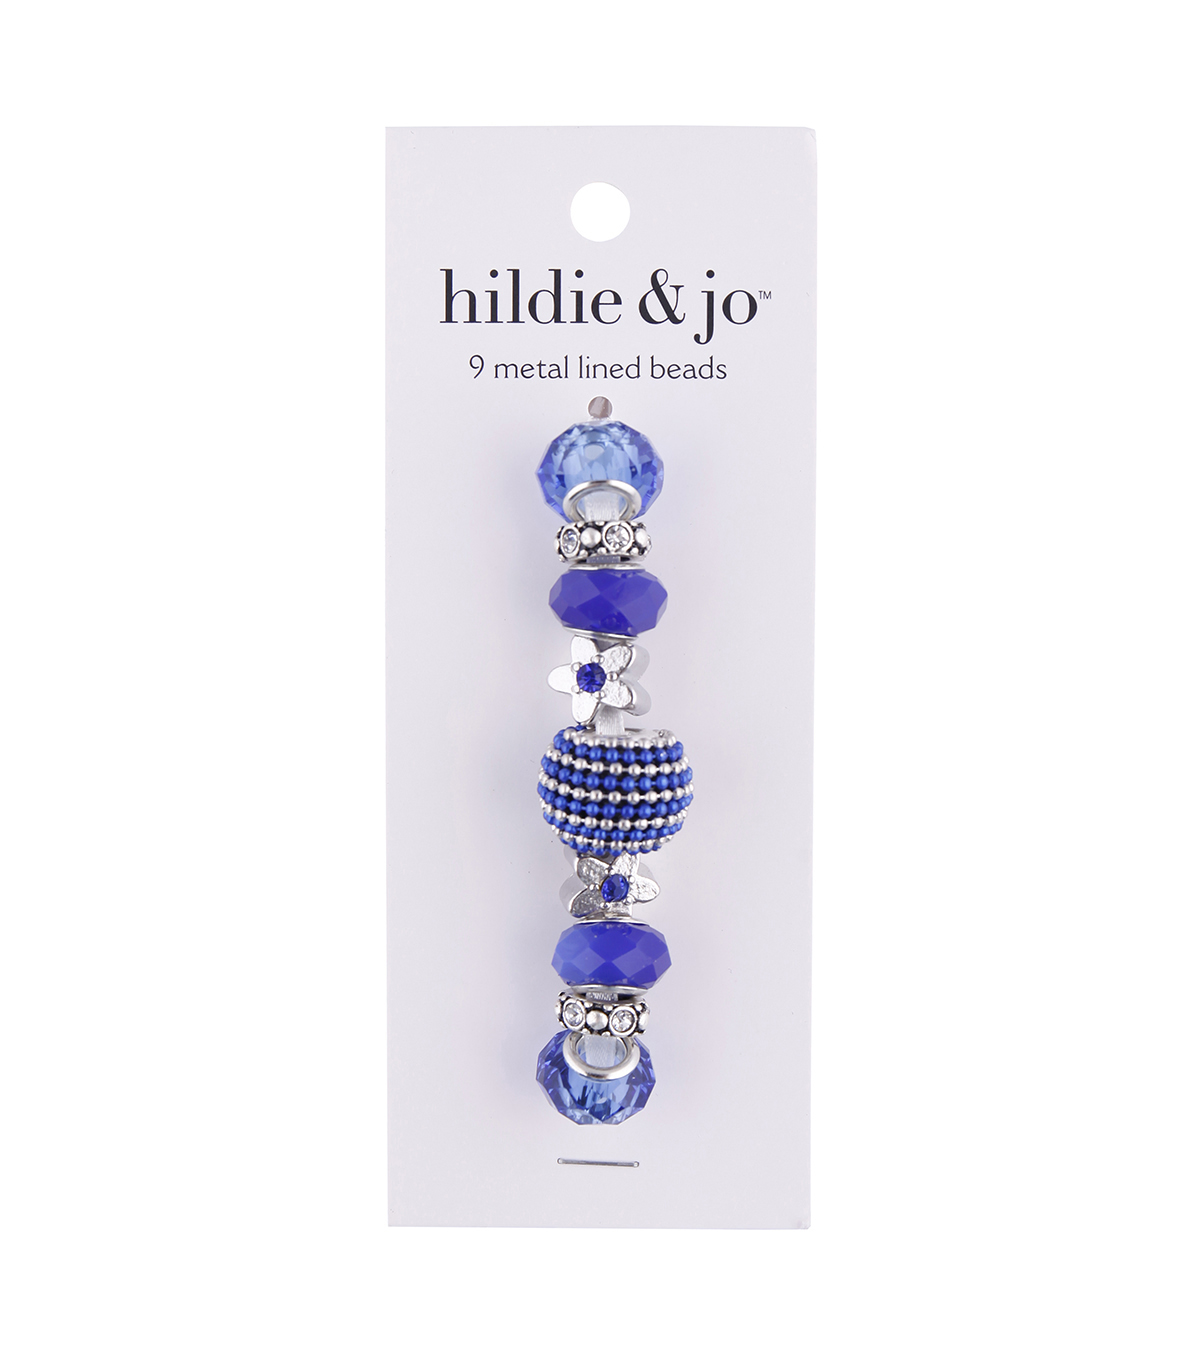 hildie & jo™ Mix & Mingle 9 pk Metal Lined Glass Beads-Navy